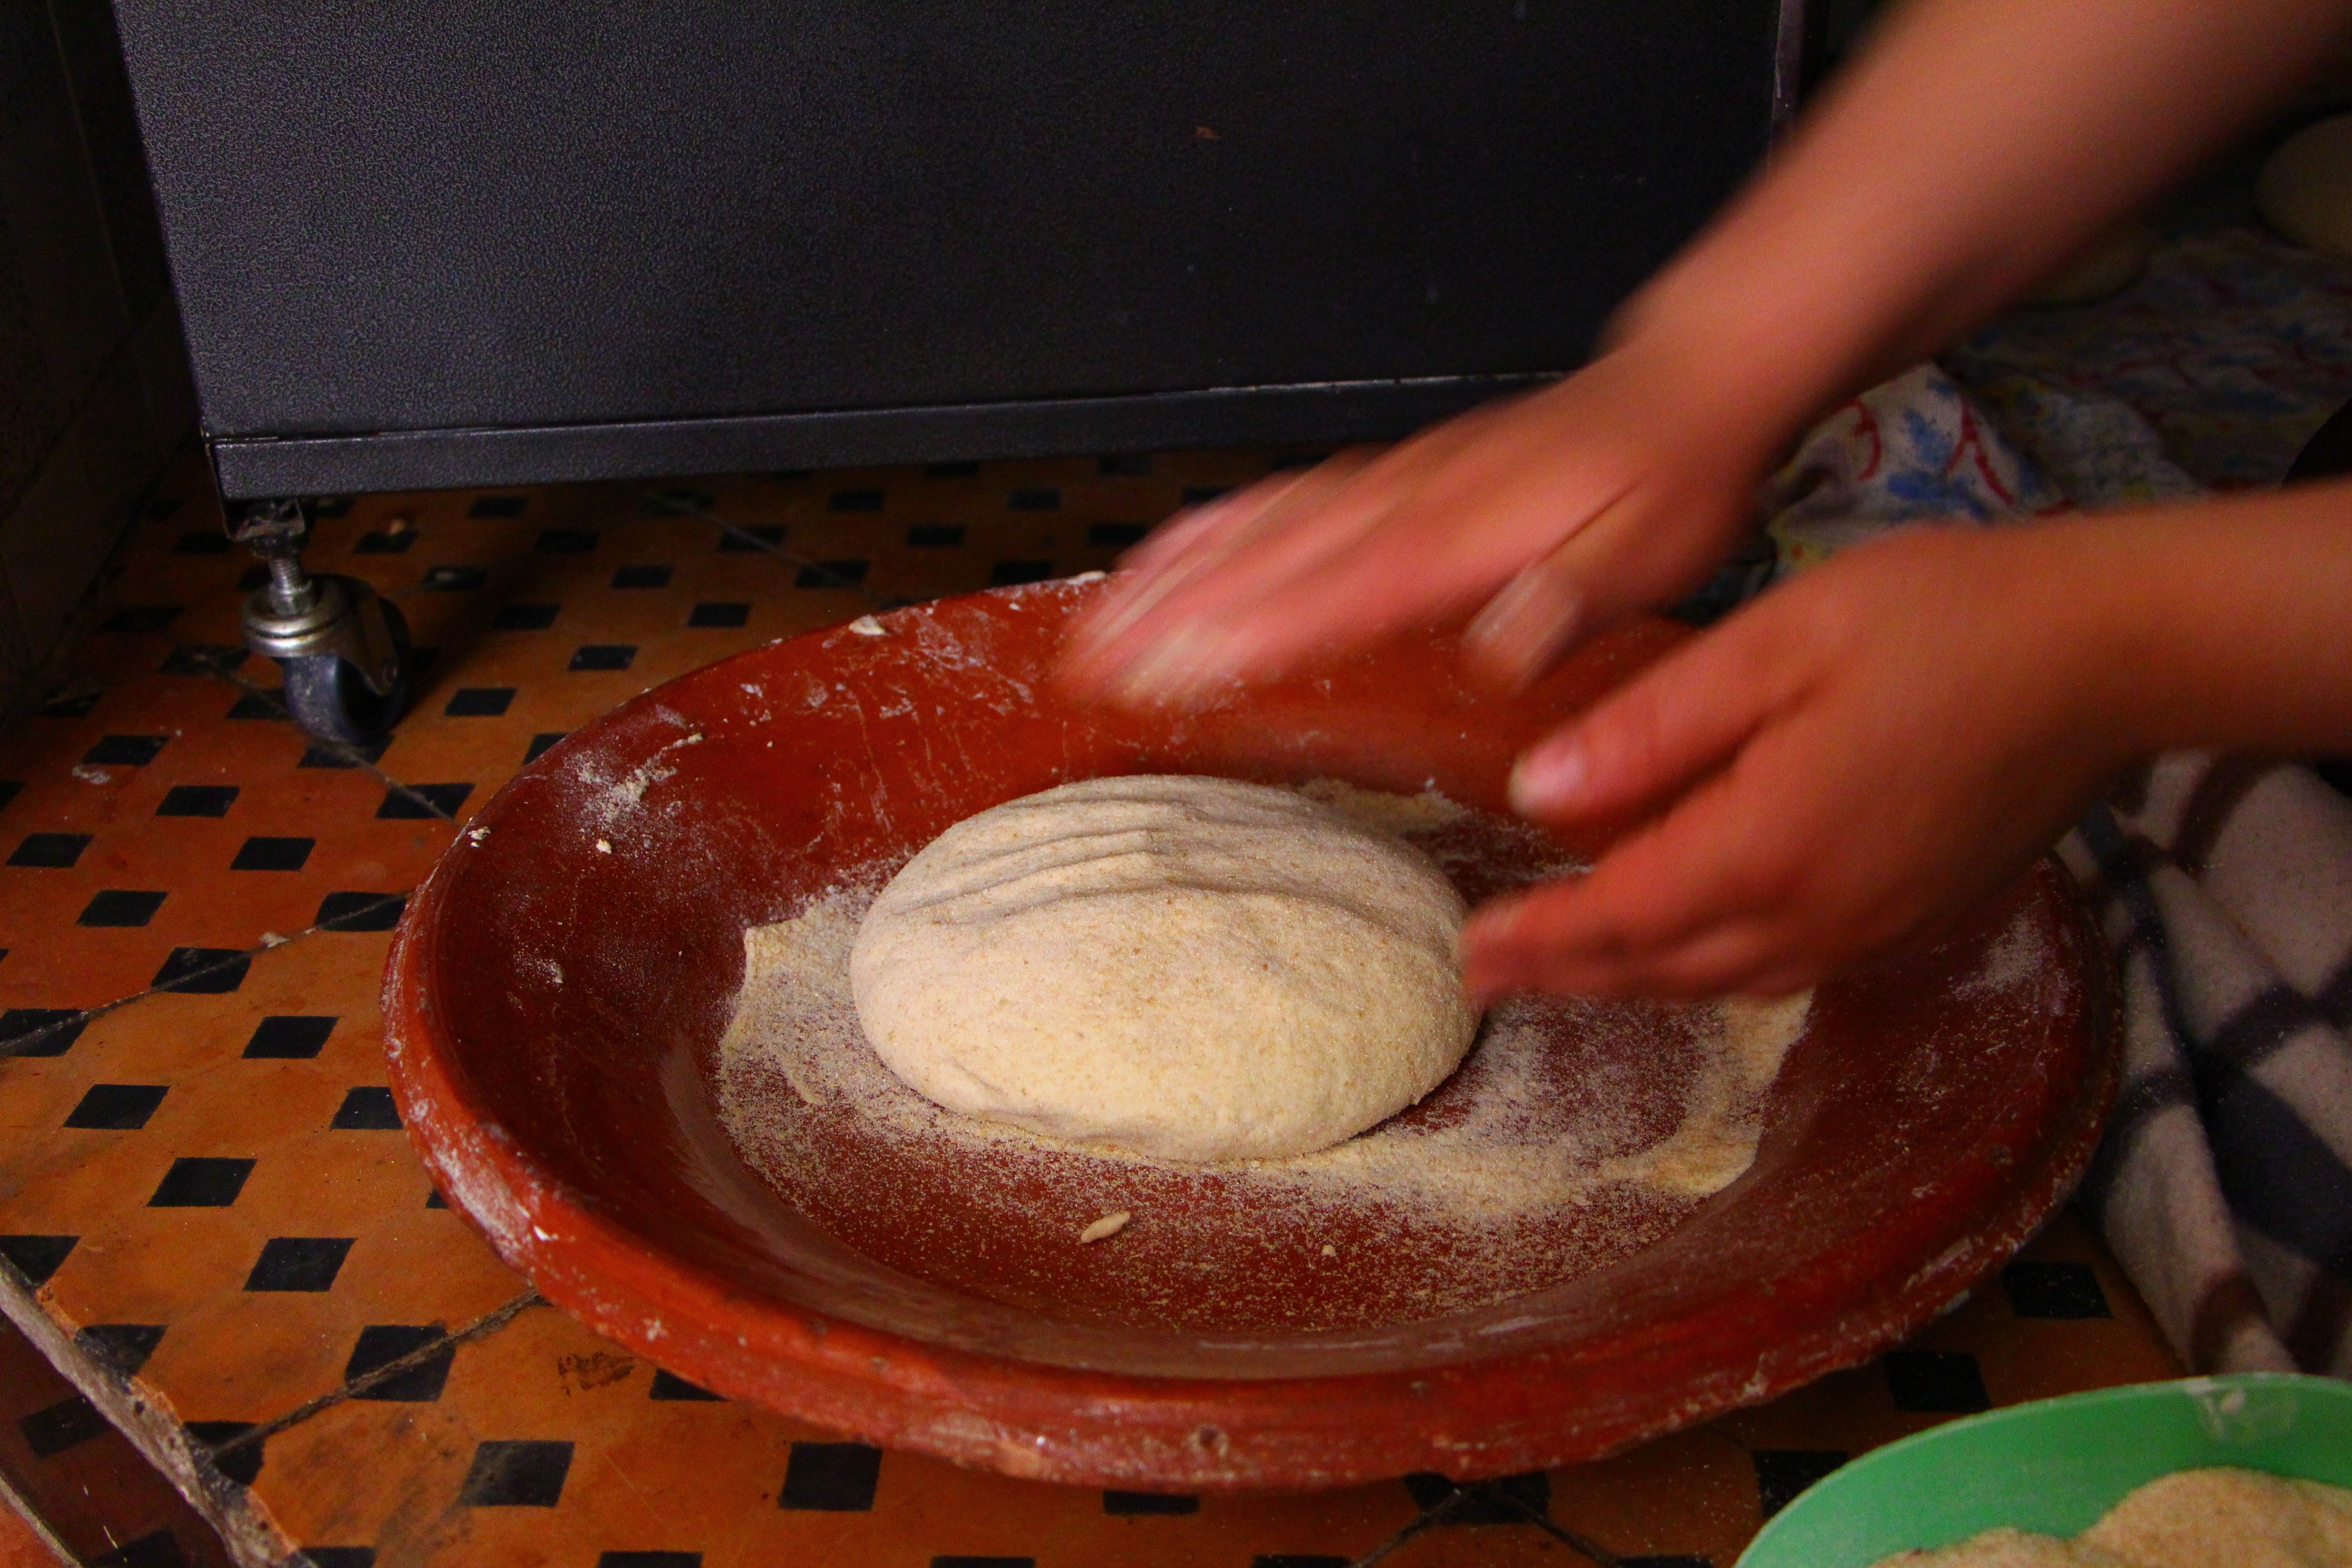 Making bread at home: a good indicator of political and social stability in North African countries. (Photo credit: Katharina Graf, author provided)